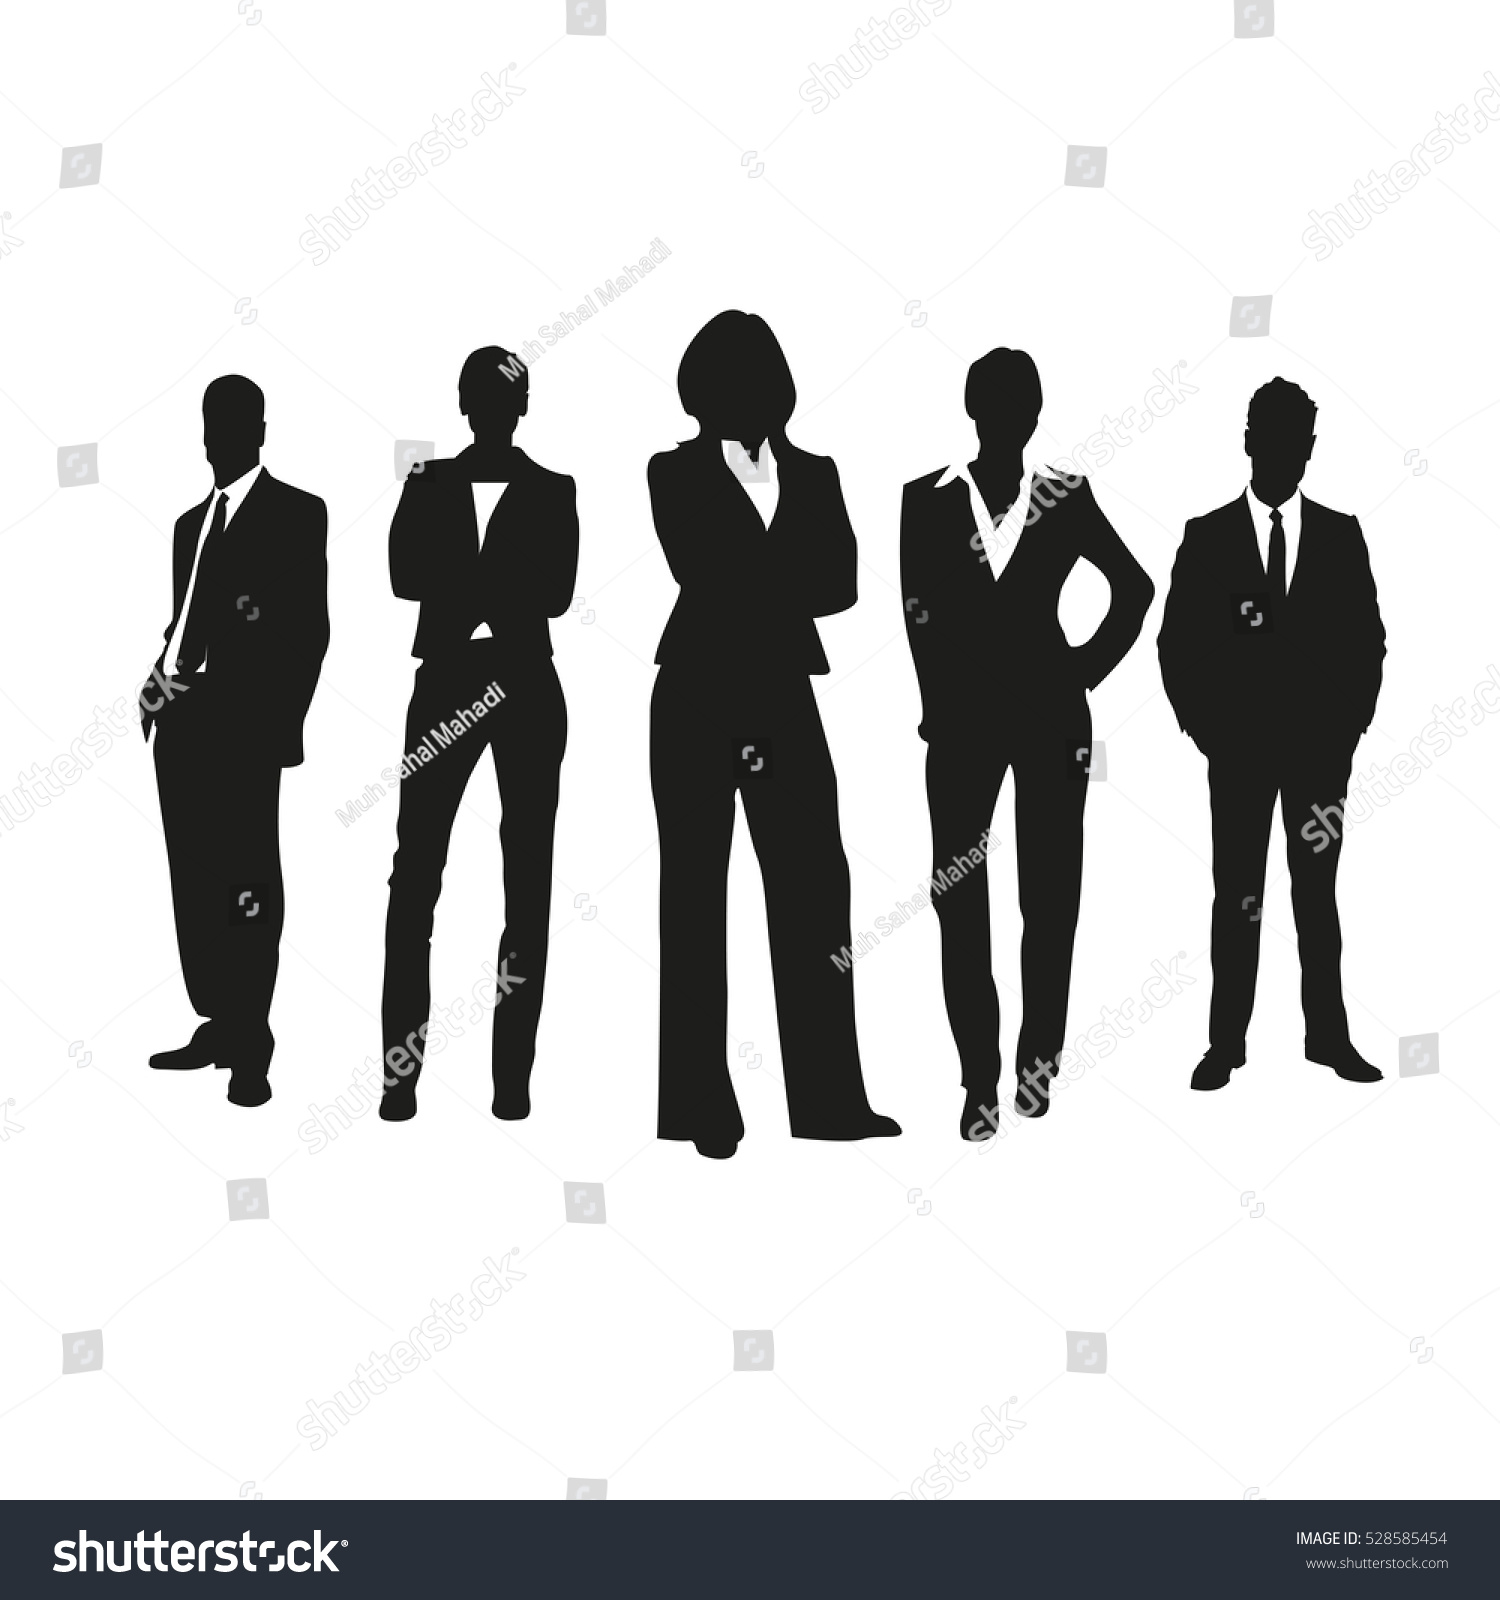 Business People On Silhouettes Stock Vector 528585454 - Shutterstock for Business People Silhouette Png  181obs